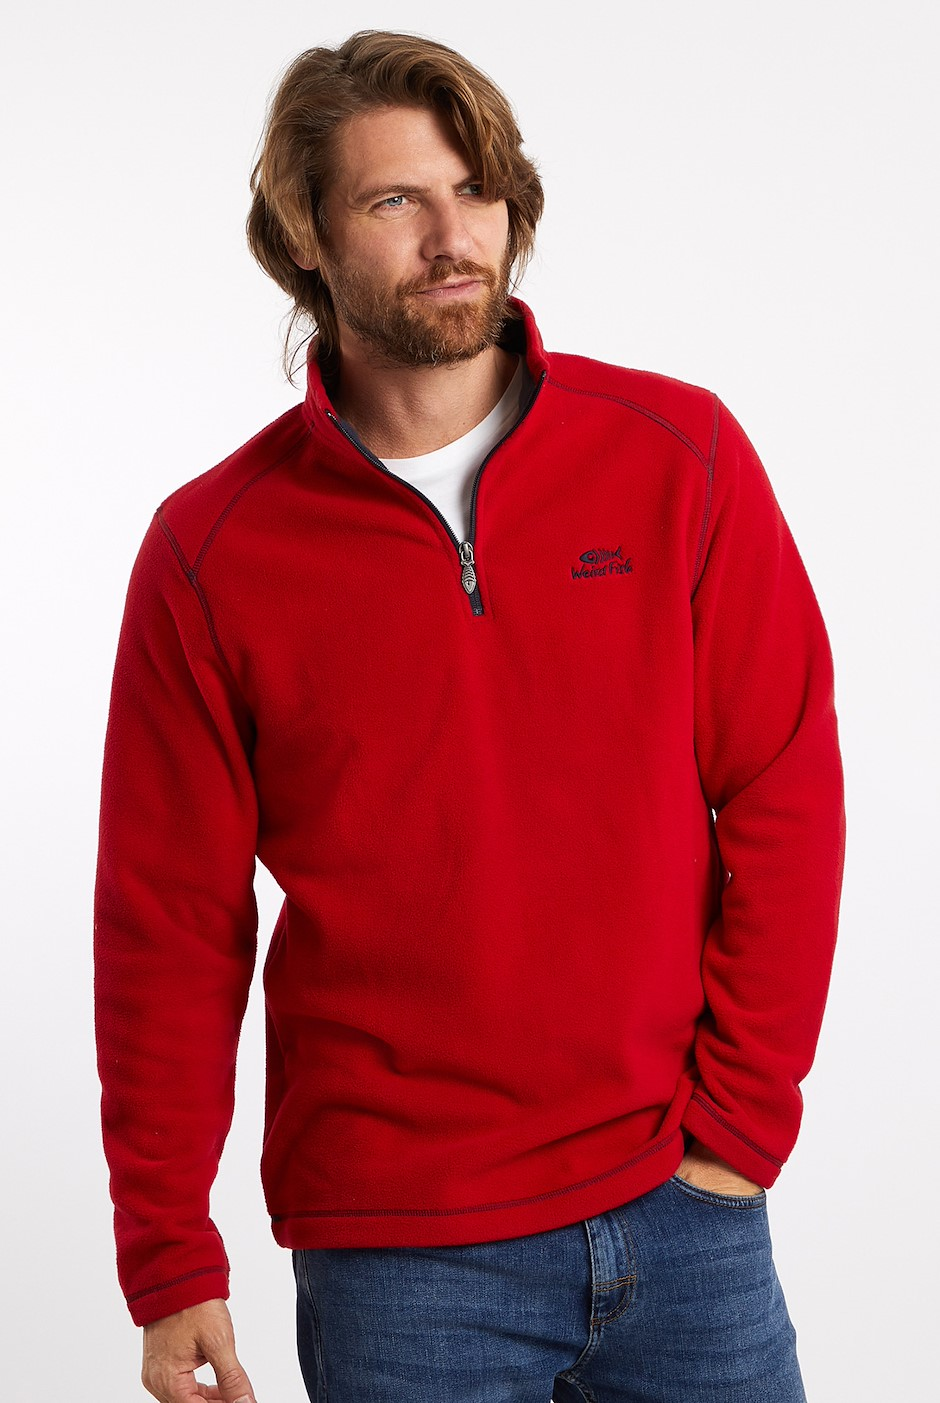 Hagan 1/4 Zip Microfleece Chilli Pepper